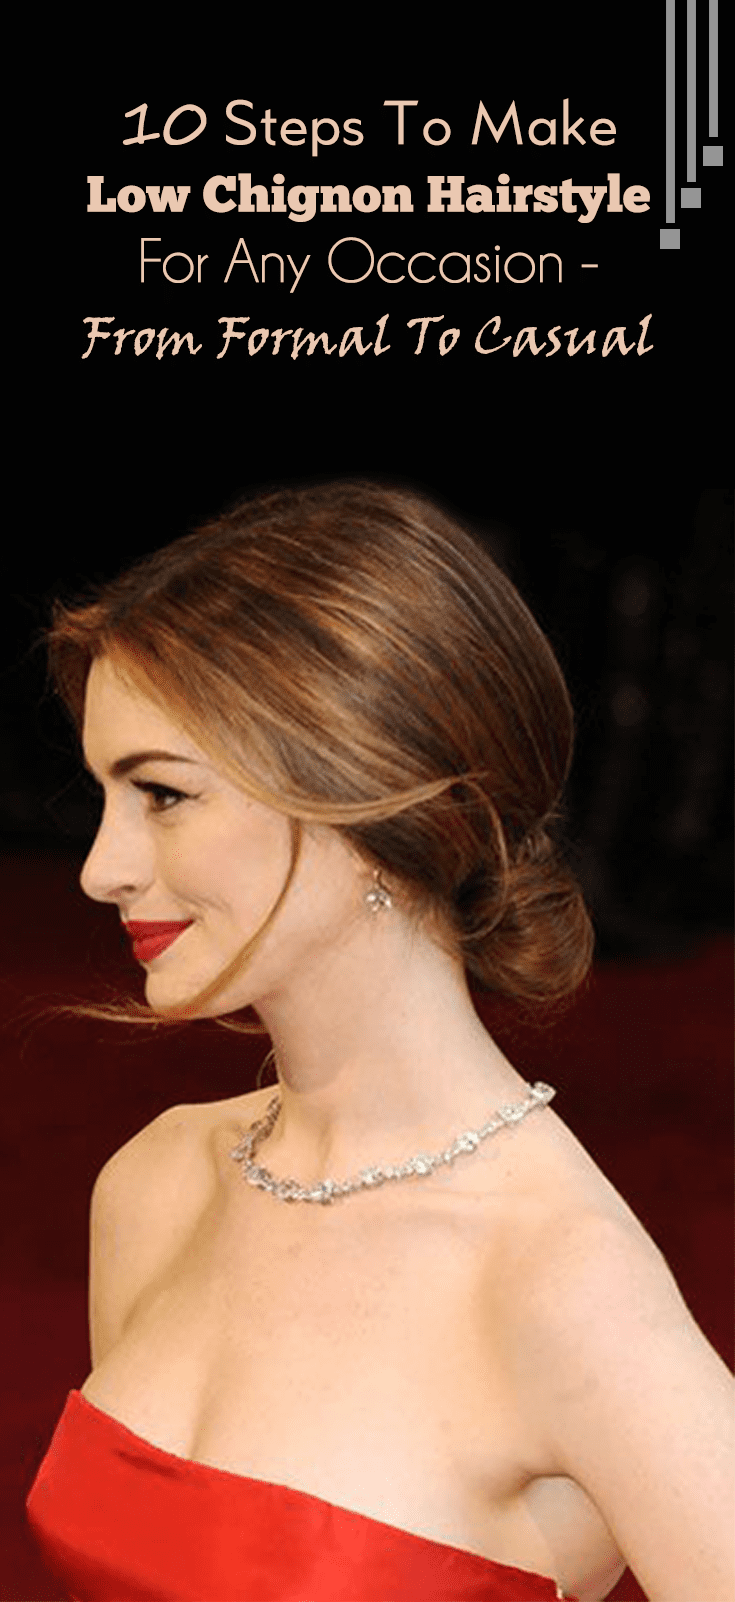 10 Steps To Make Low Chignon Hairstyle For Any Occasion